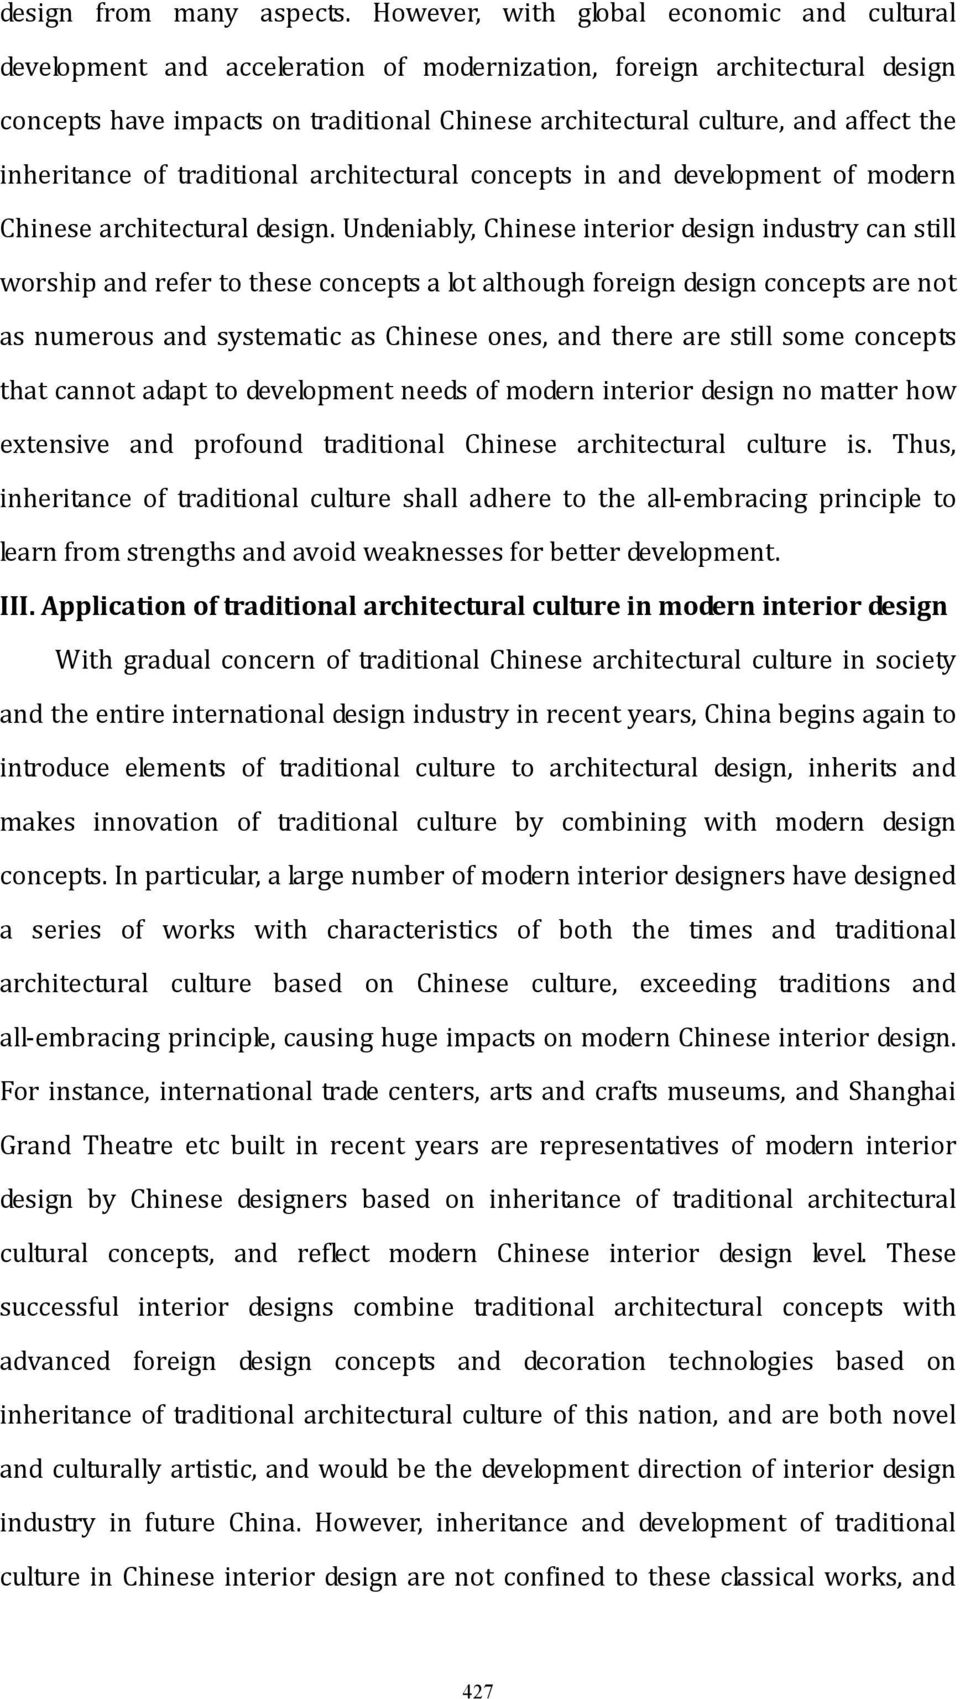 the inheritance of traditional architectural concepts in and development of modern Chinese architectural design.